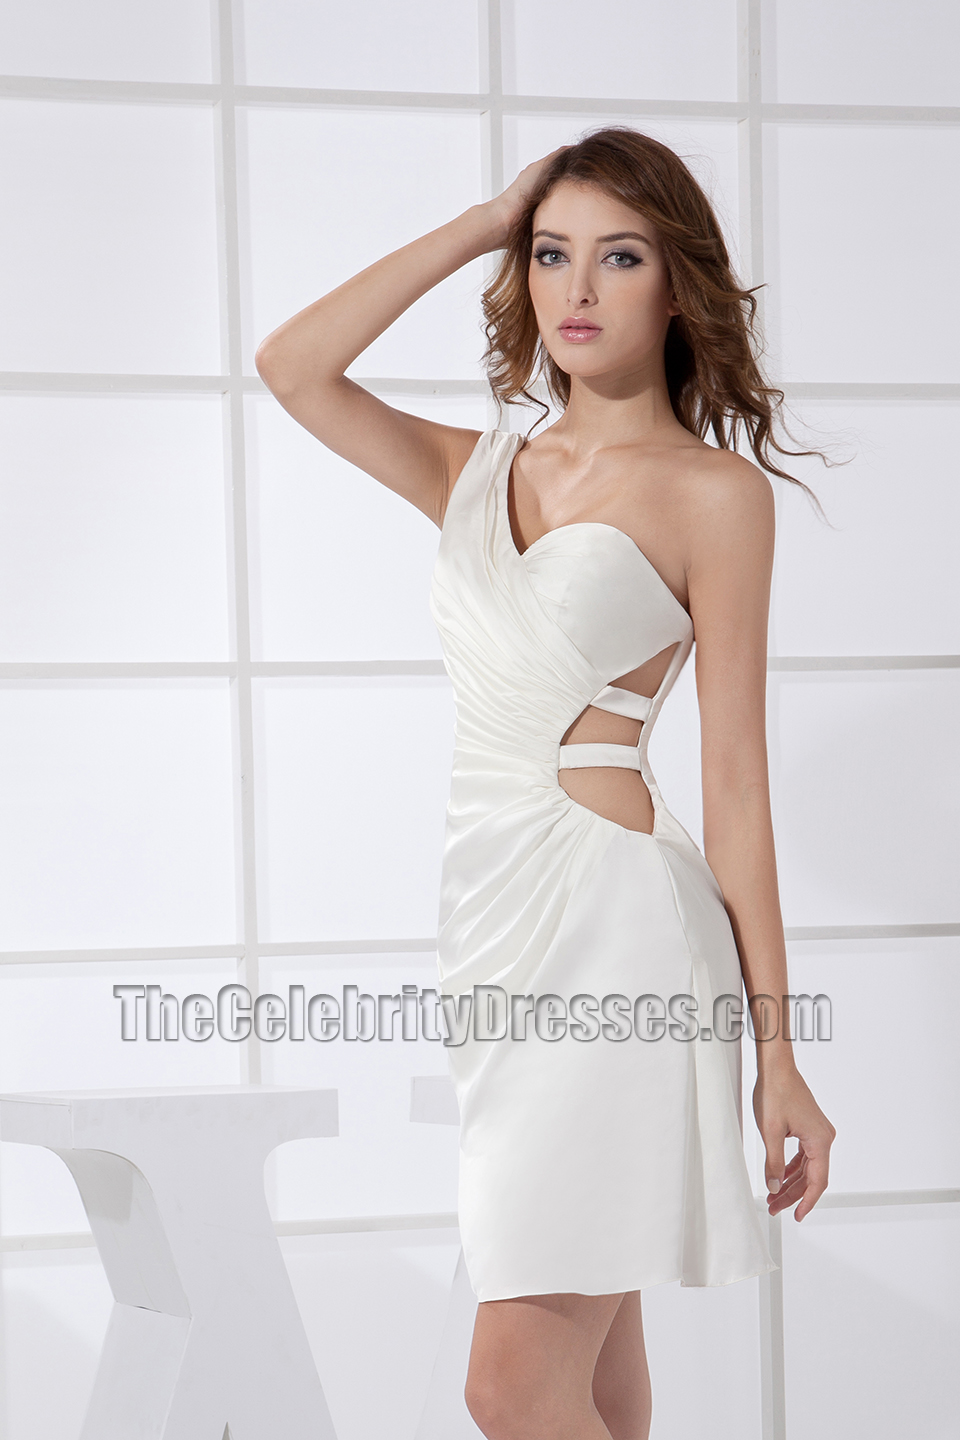 With plenty of styles, like strapless, halter, and long sleeve wedding guest dresses to dreamy silhouettes like A-line and party skirts, our endless variety of dresses will give you lots of fashionable options for your next wedding ceremony. Off Shoulder Leaf Applique Mesh Party Dress $ One Shoulder Sequin Dress $